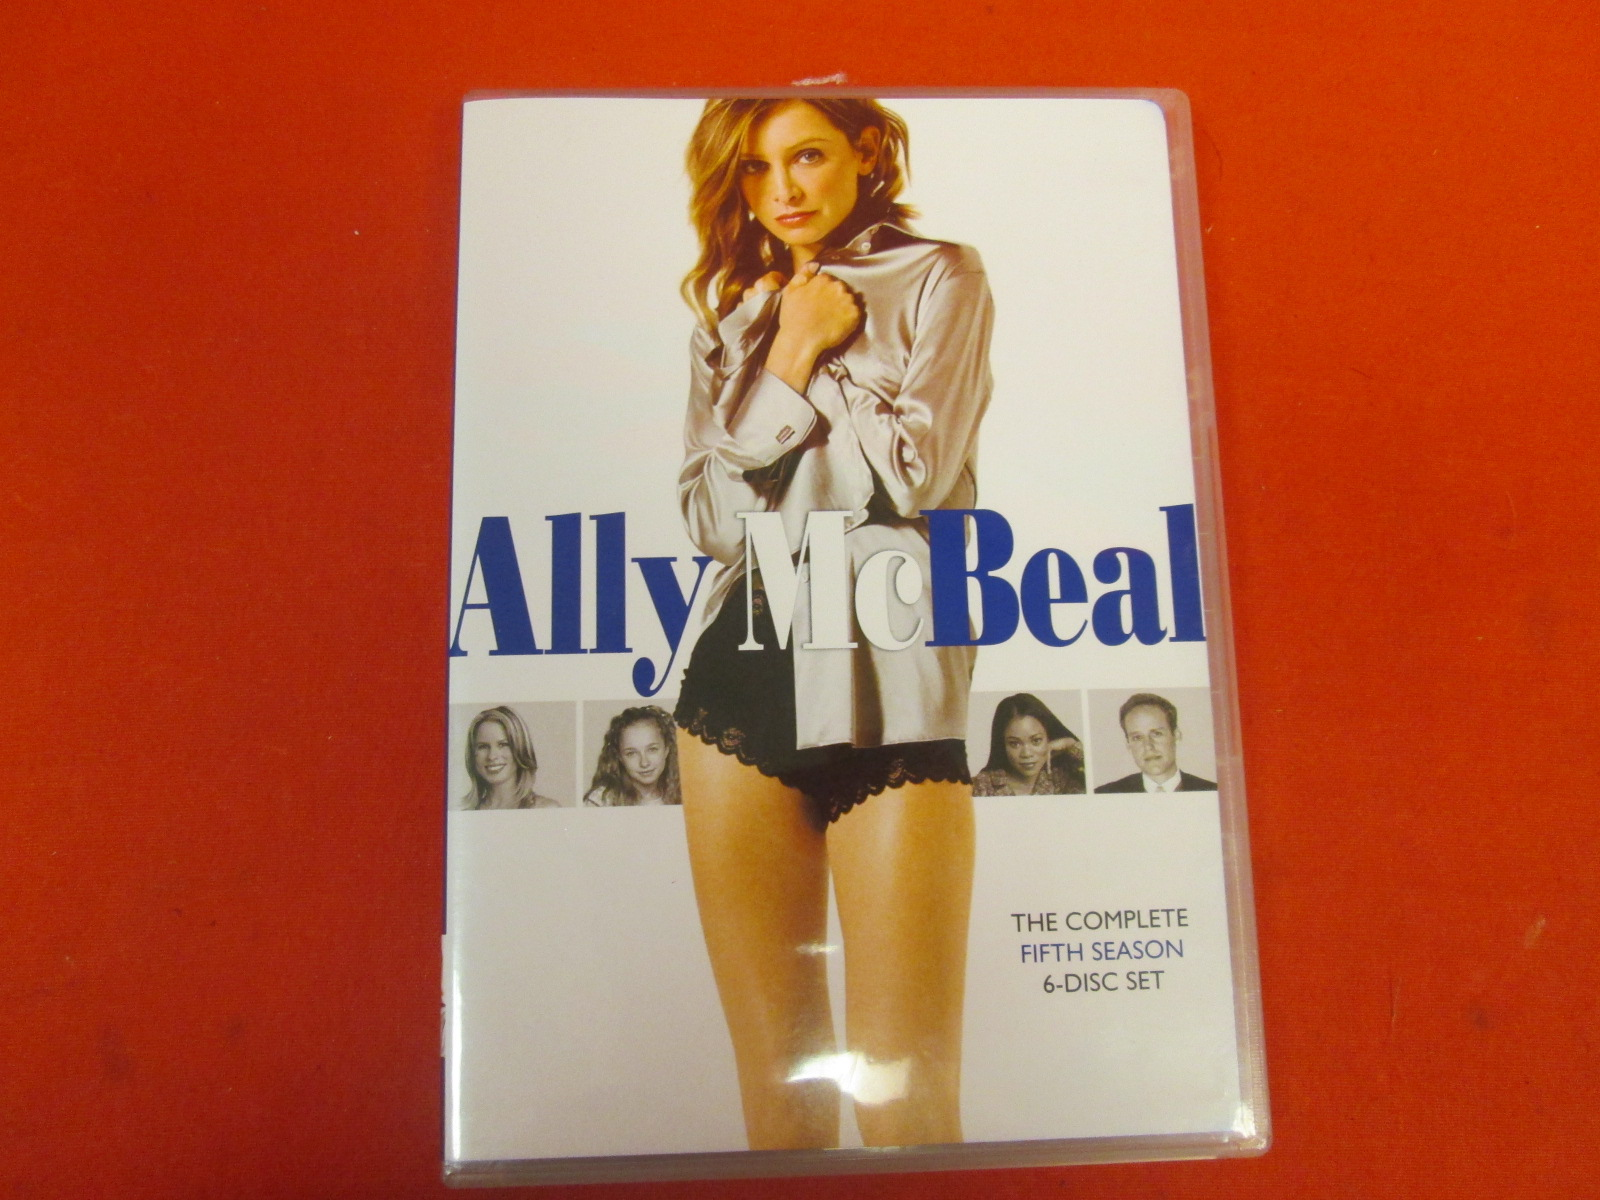 Ally Mcbeal: Season 5 On DVD With Calista Flockhart